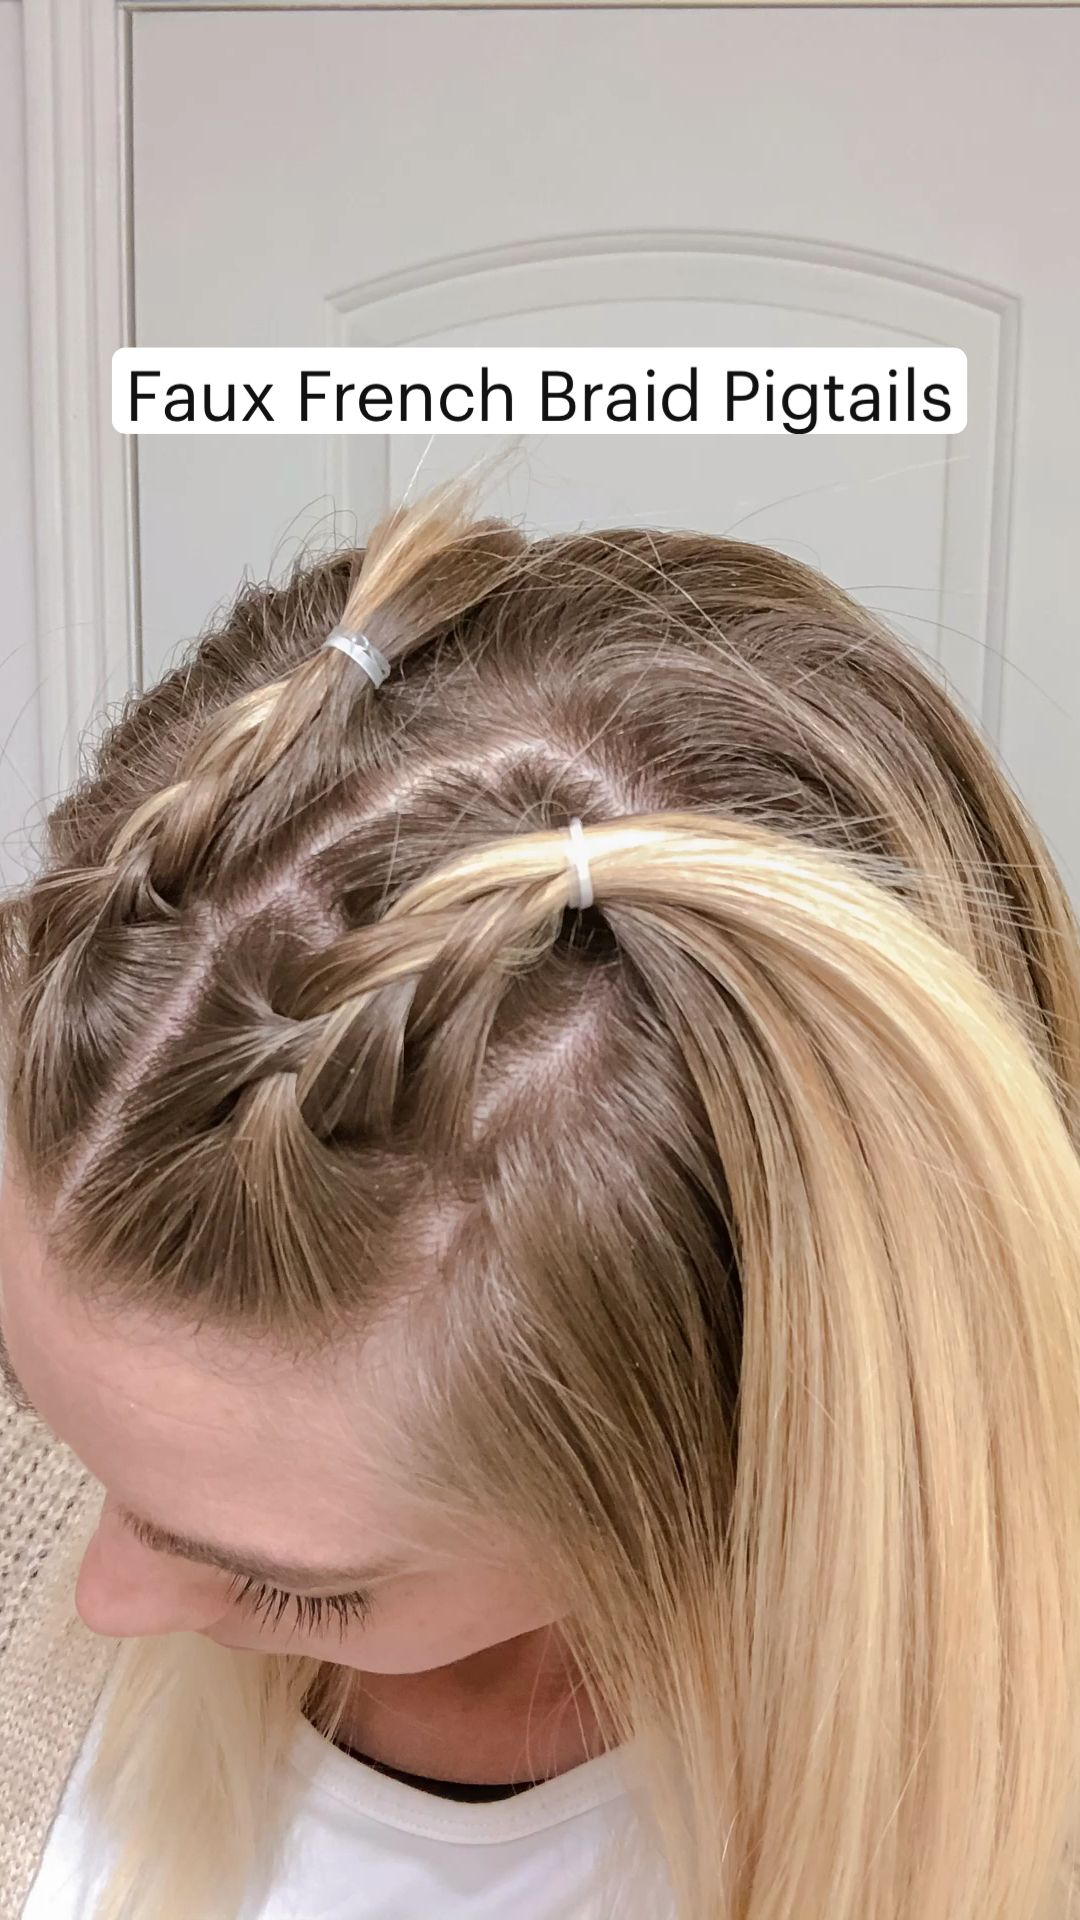 Faux French Braid Pigtails